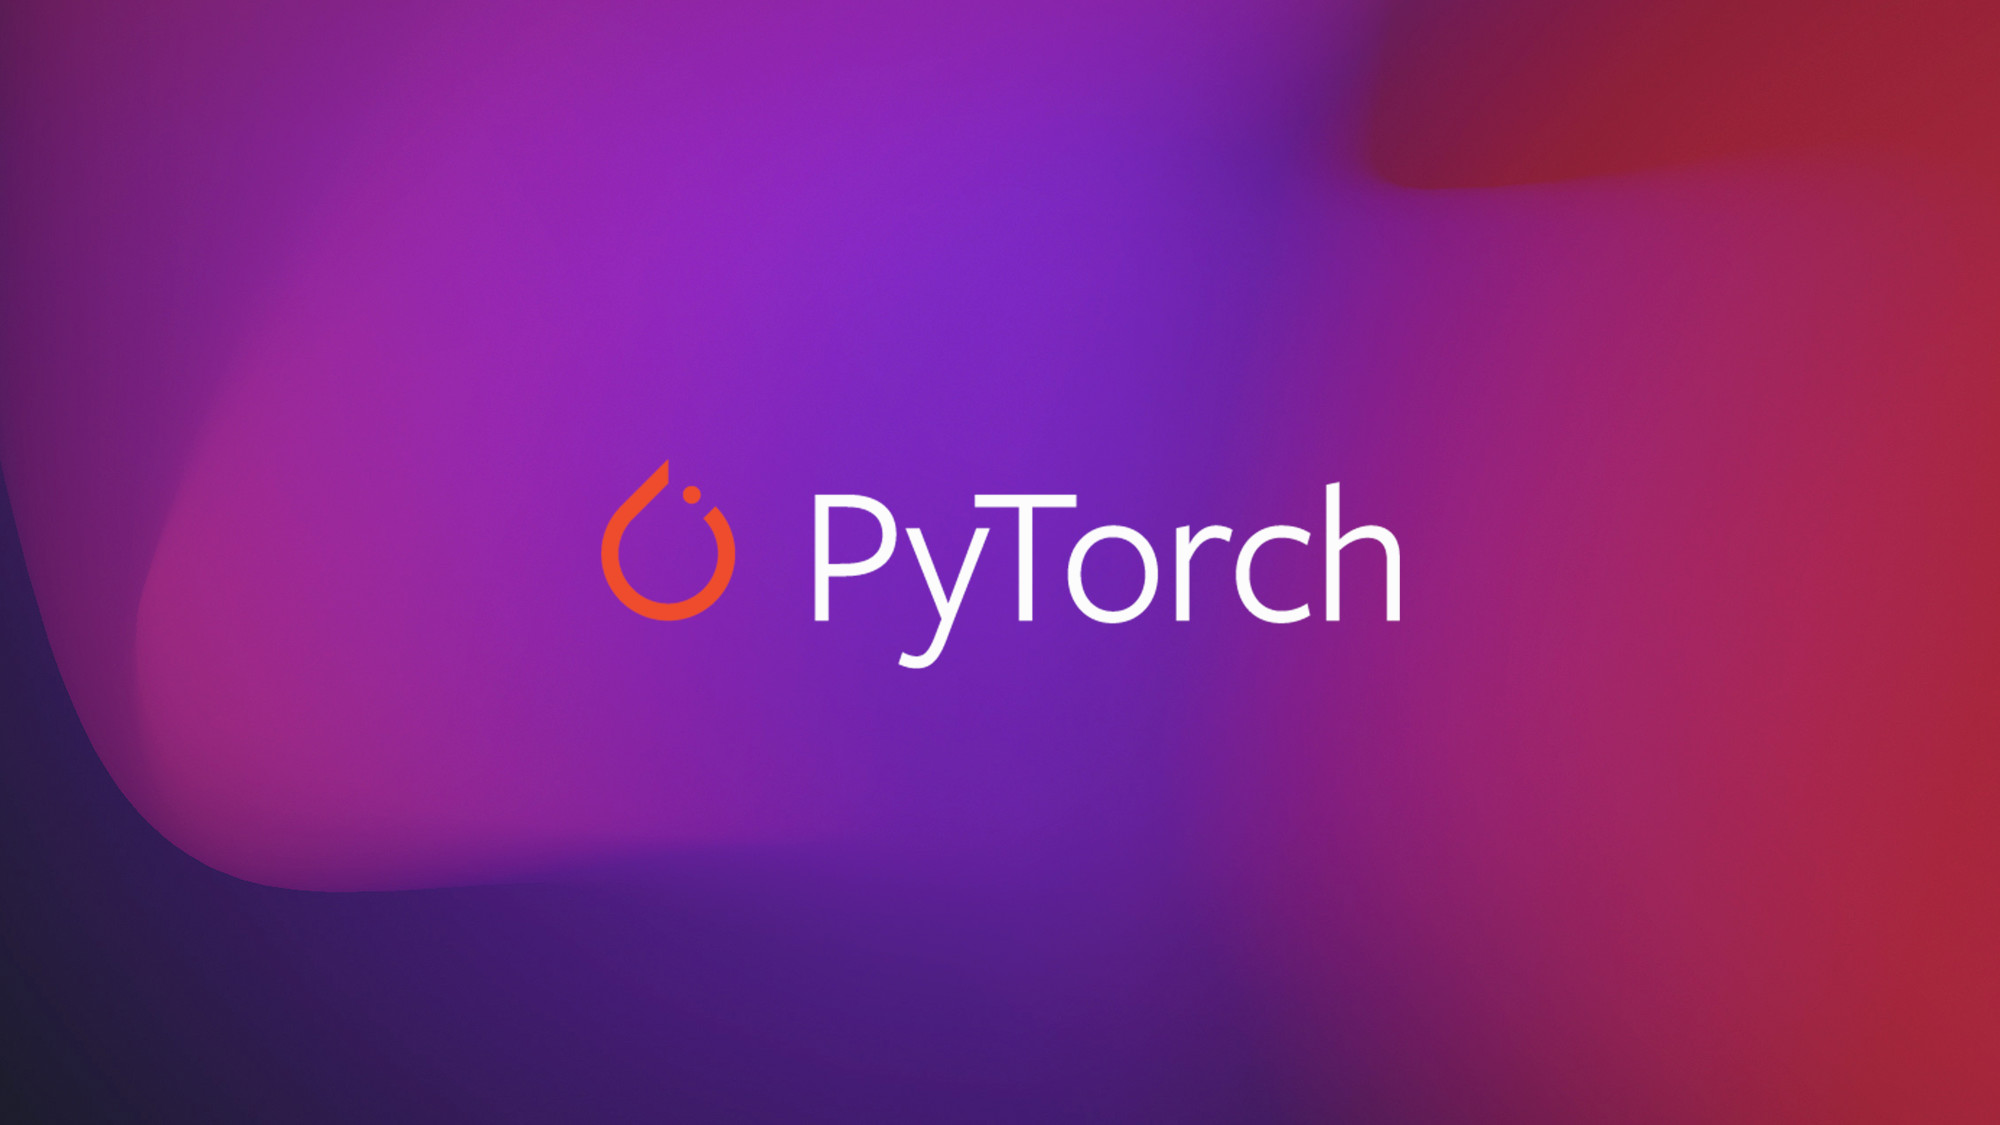 PyTorch 1 2 is now fully supported on Azure - here's some